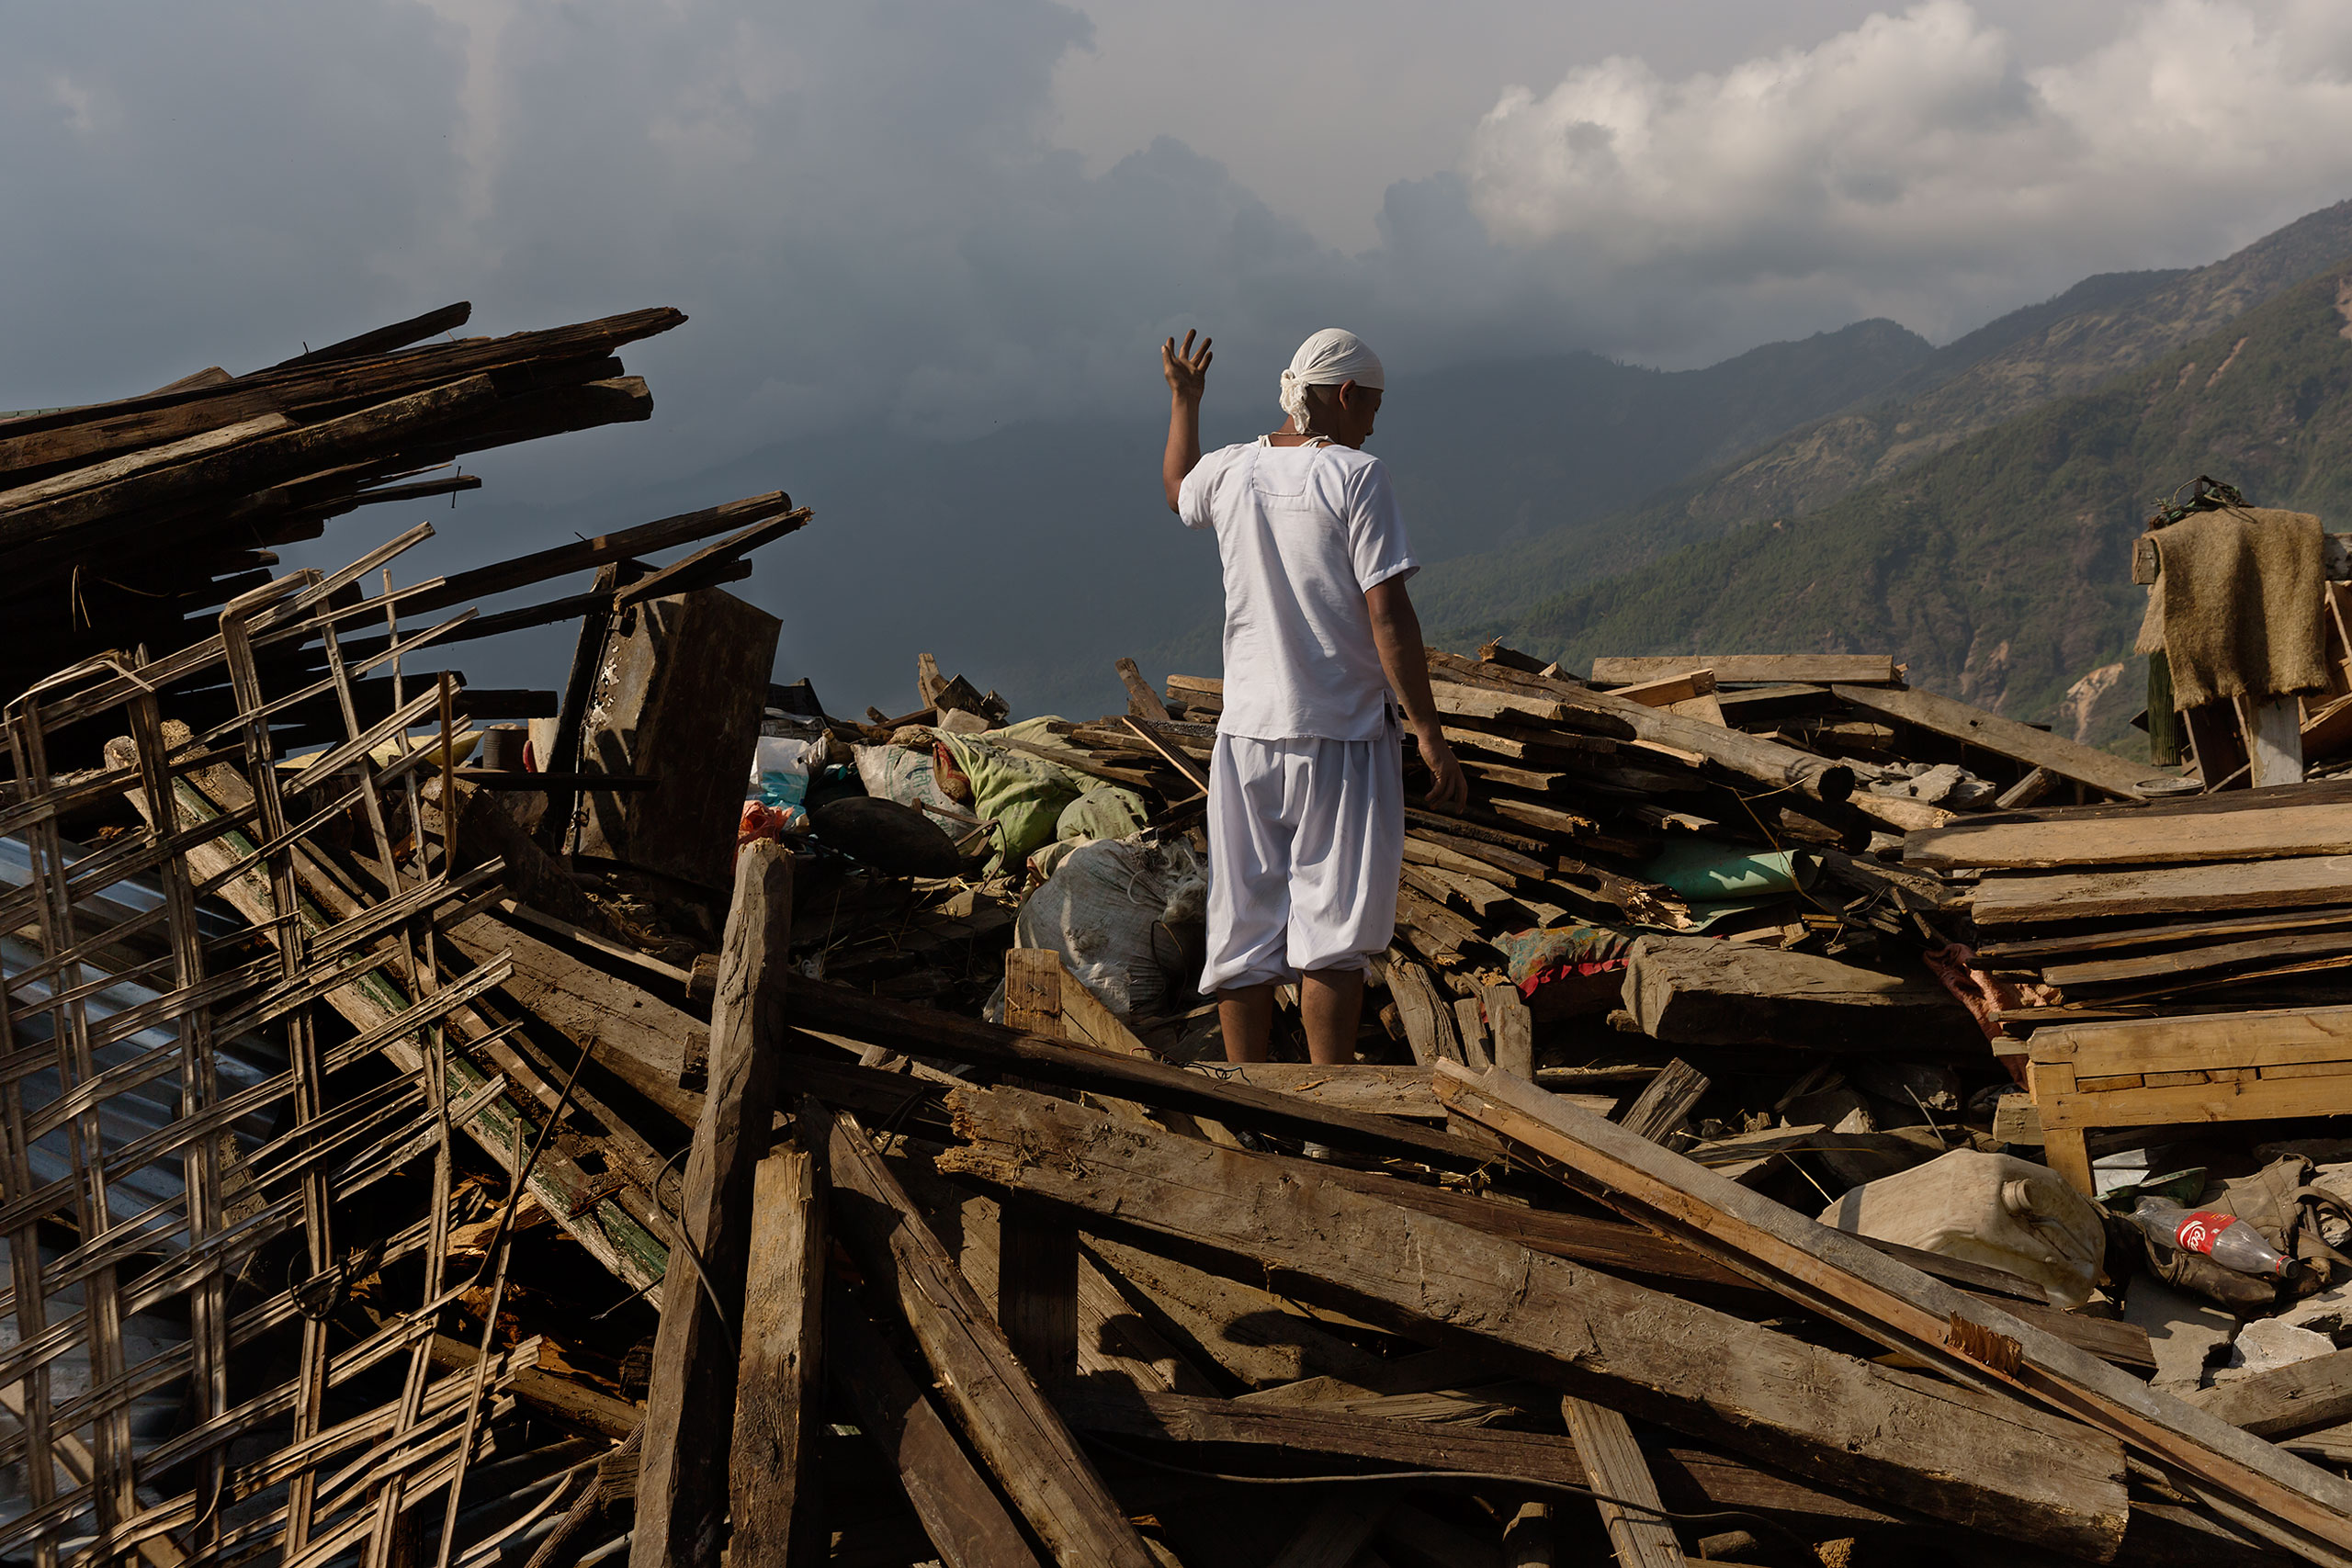 Dhan Raj Ghale, 30, dressed in mourning garb after the death of his mother, looks for possessions from his house in Barpak, Nepal, May 5, 2015.